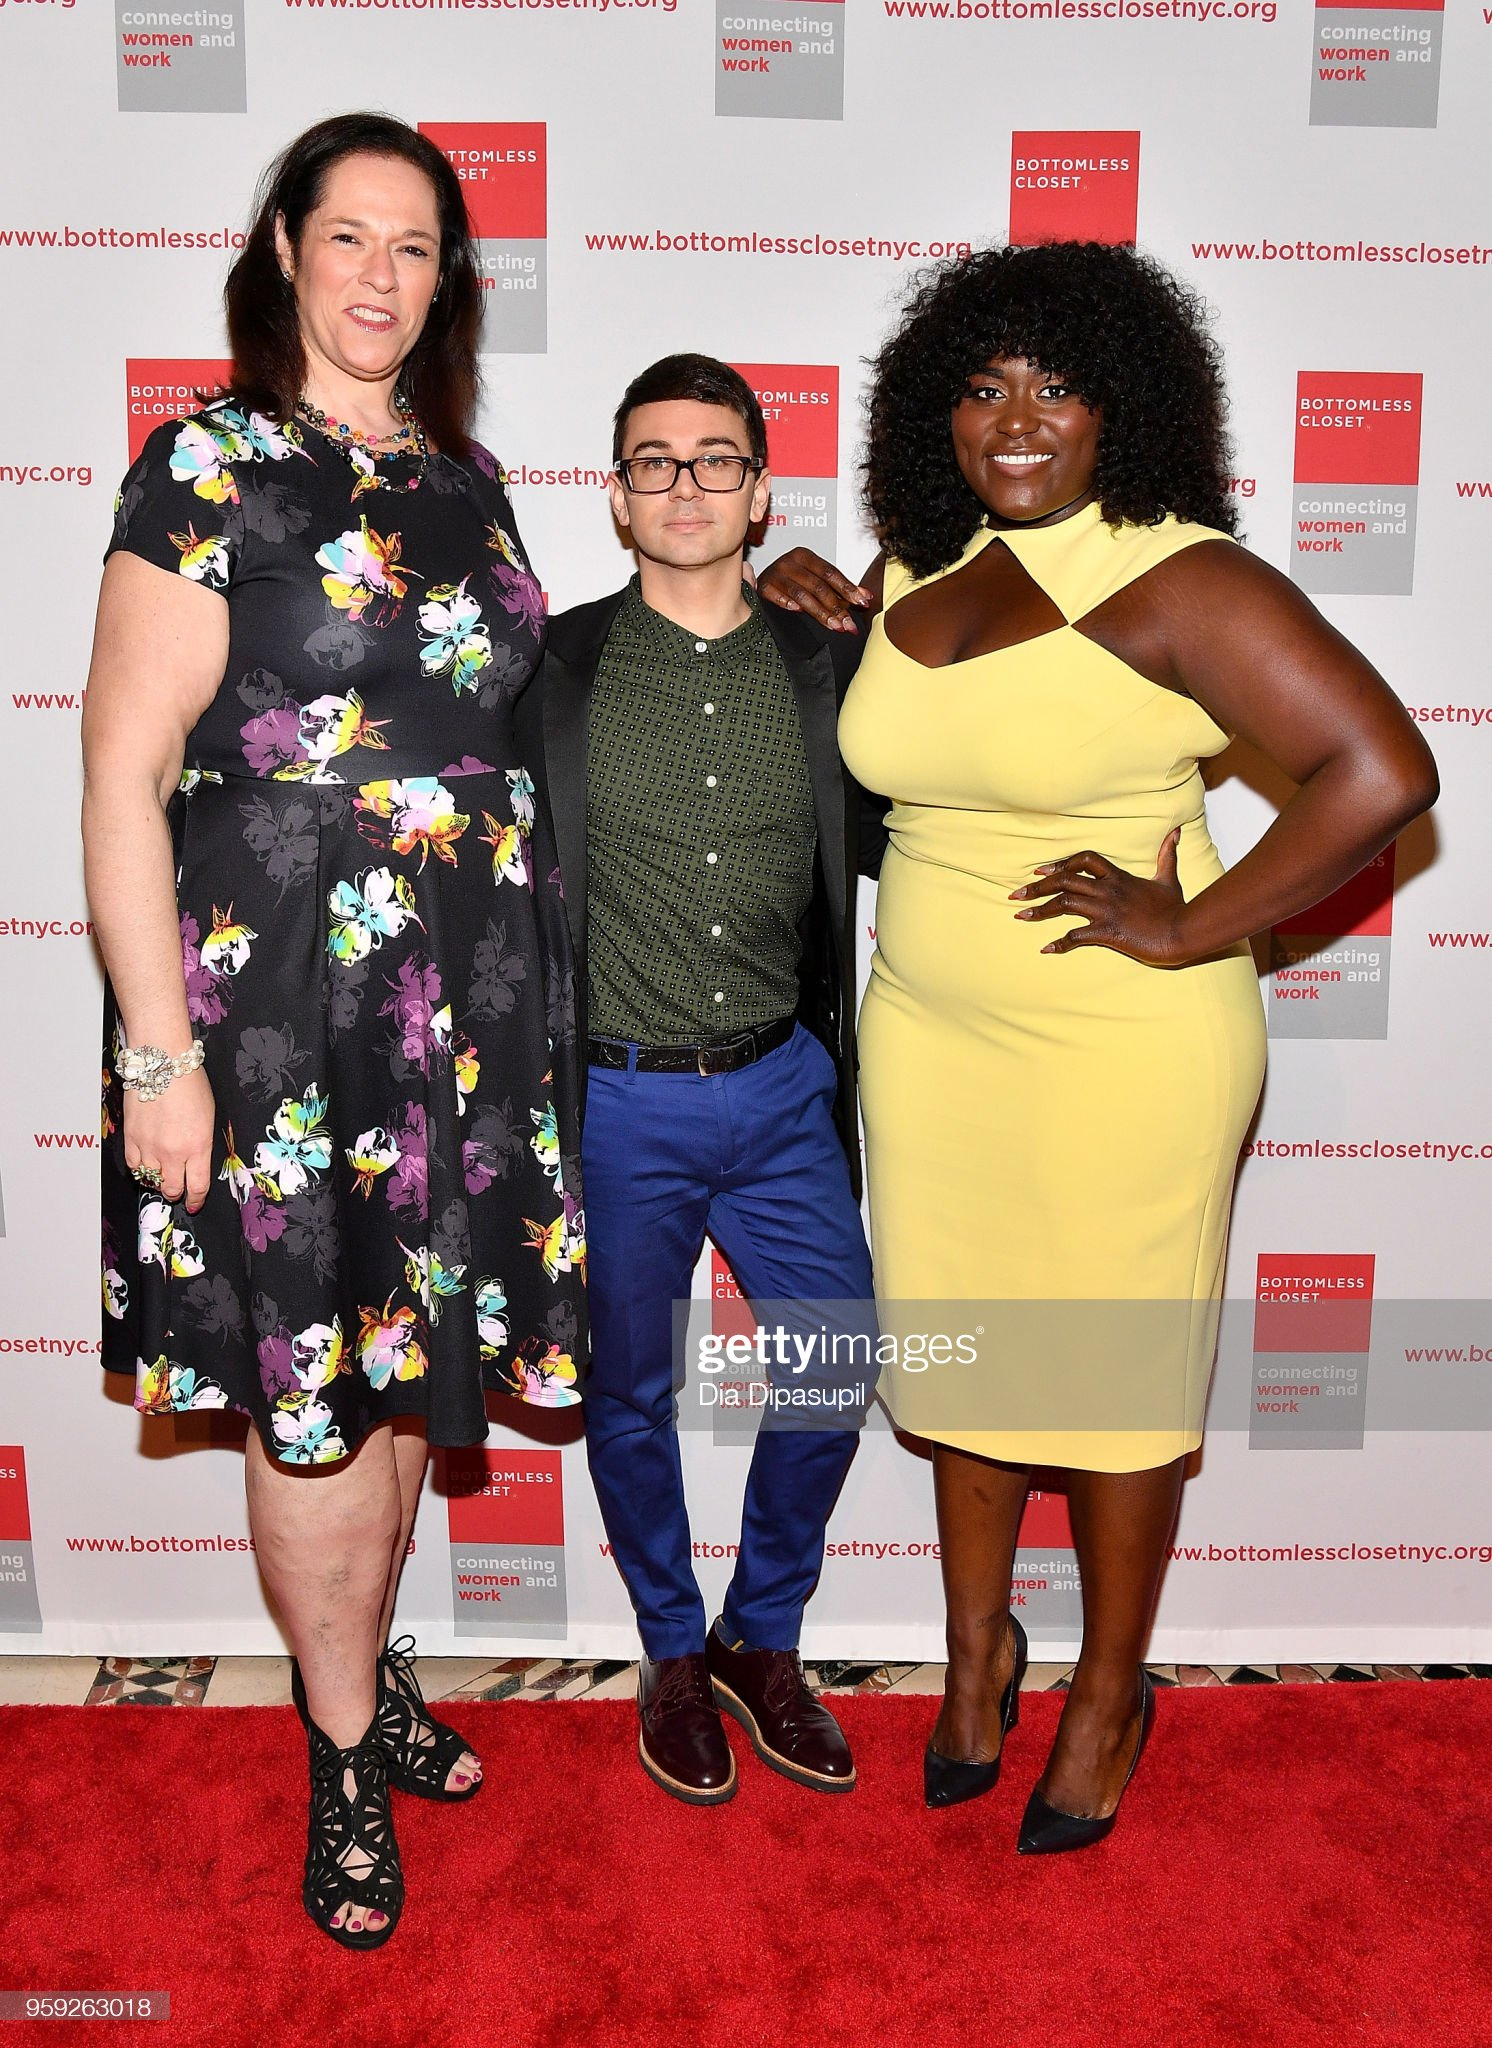 ¿Cuánto mide Melissa Norden? - Altura - Real height Melissa-norden-christian-siriano-and-danielle-brooks-attend-the-picture-id959263018?s=2048x2048